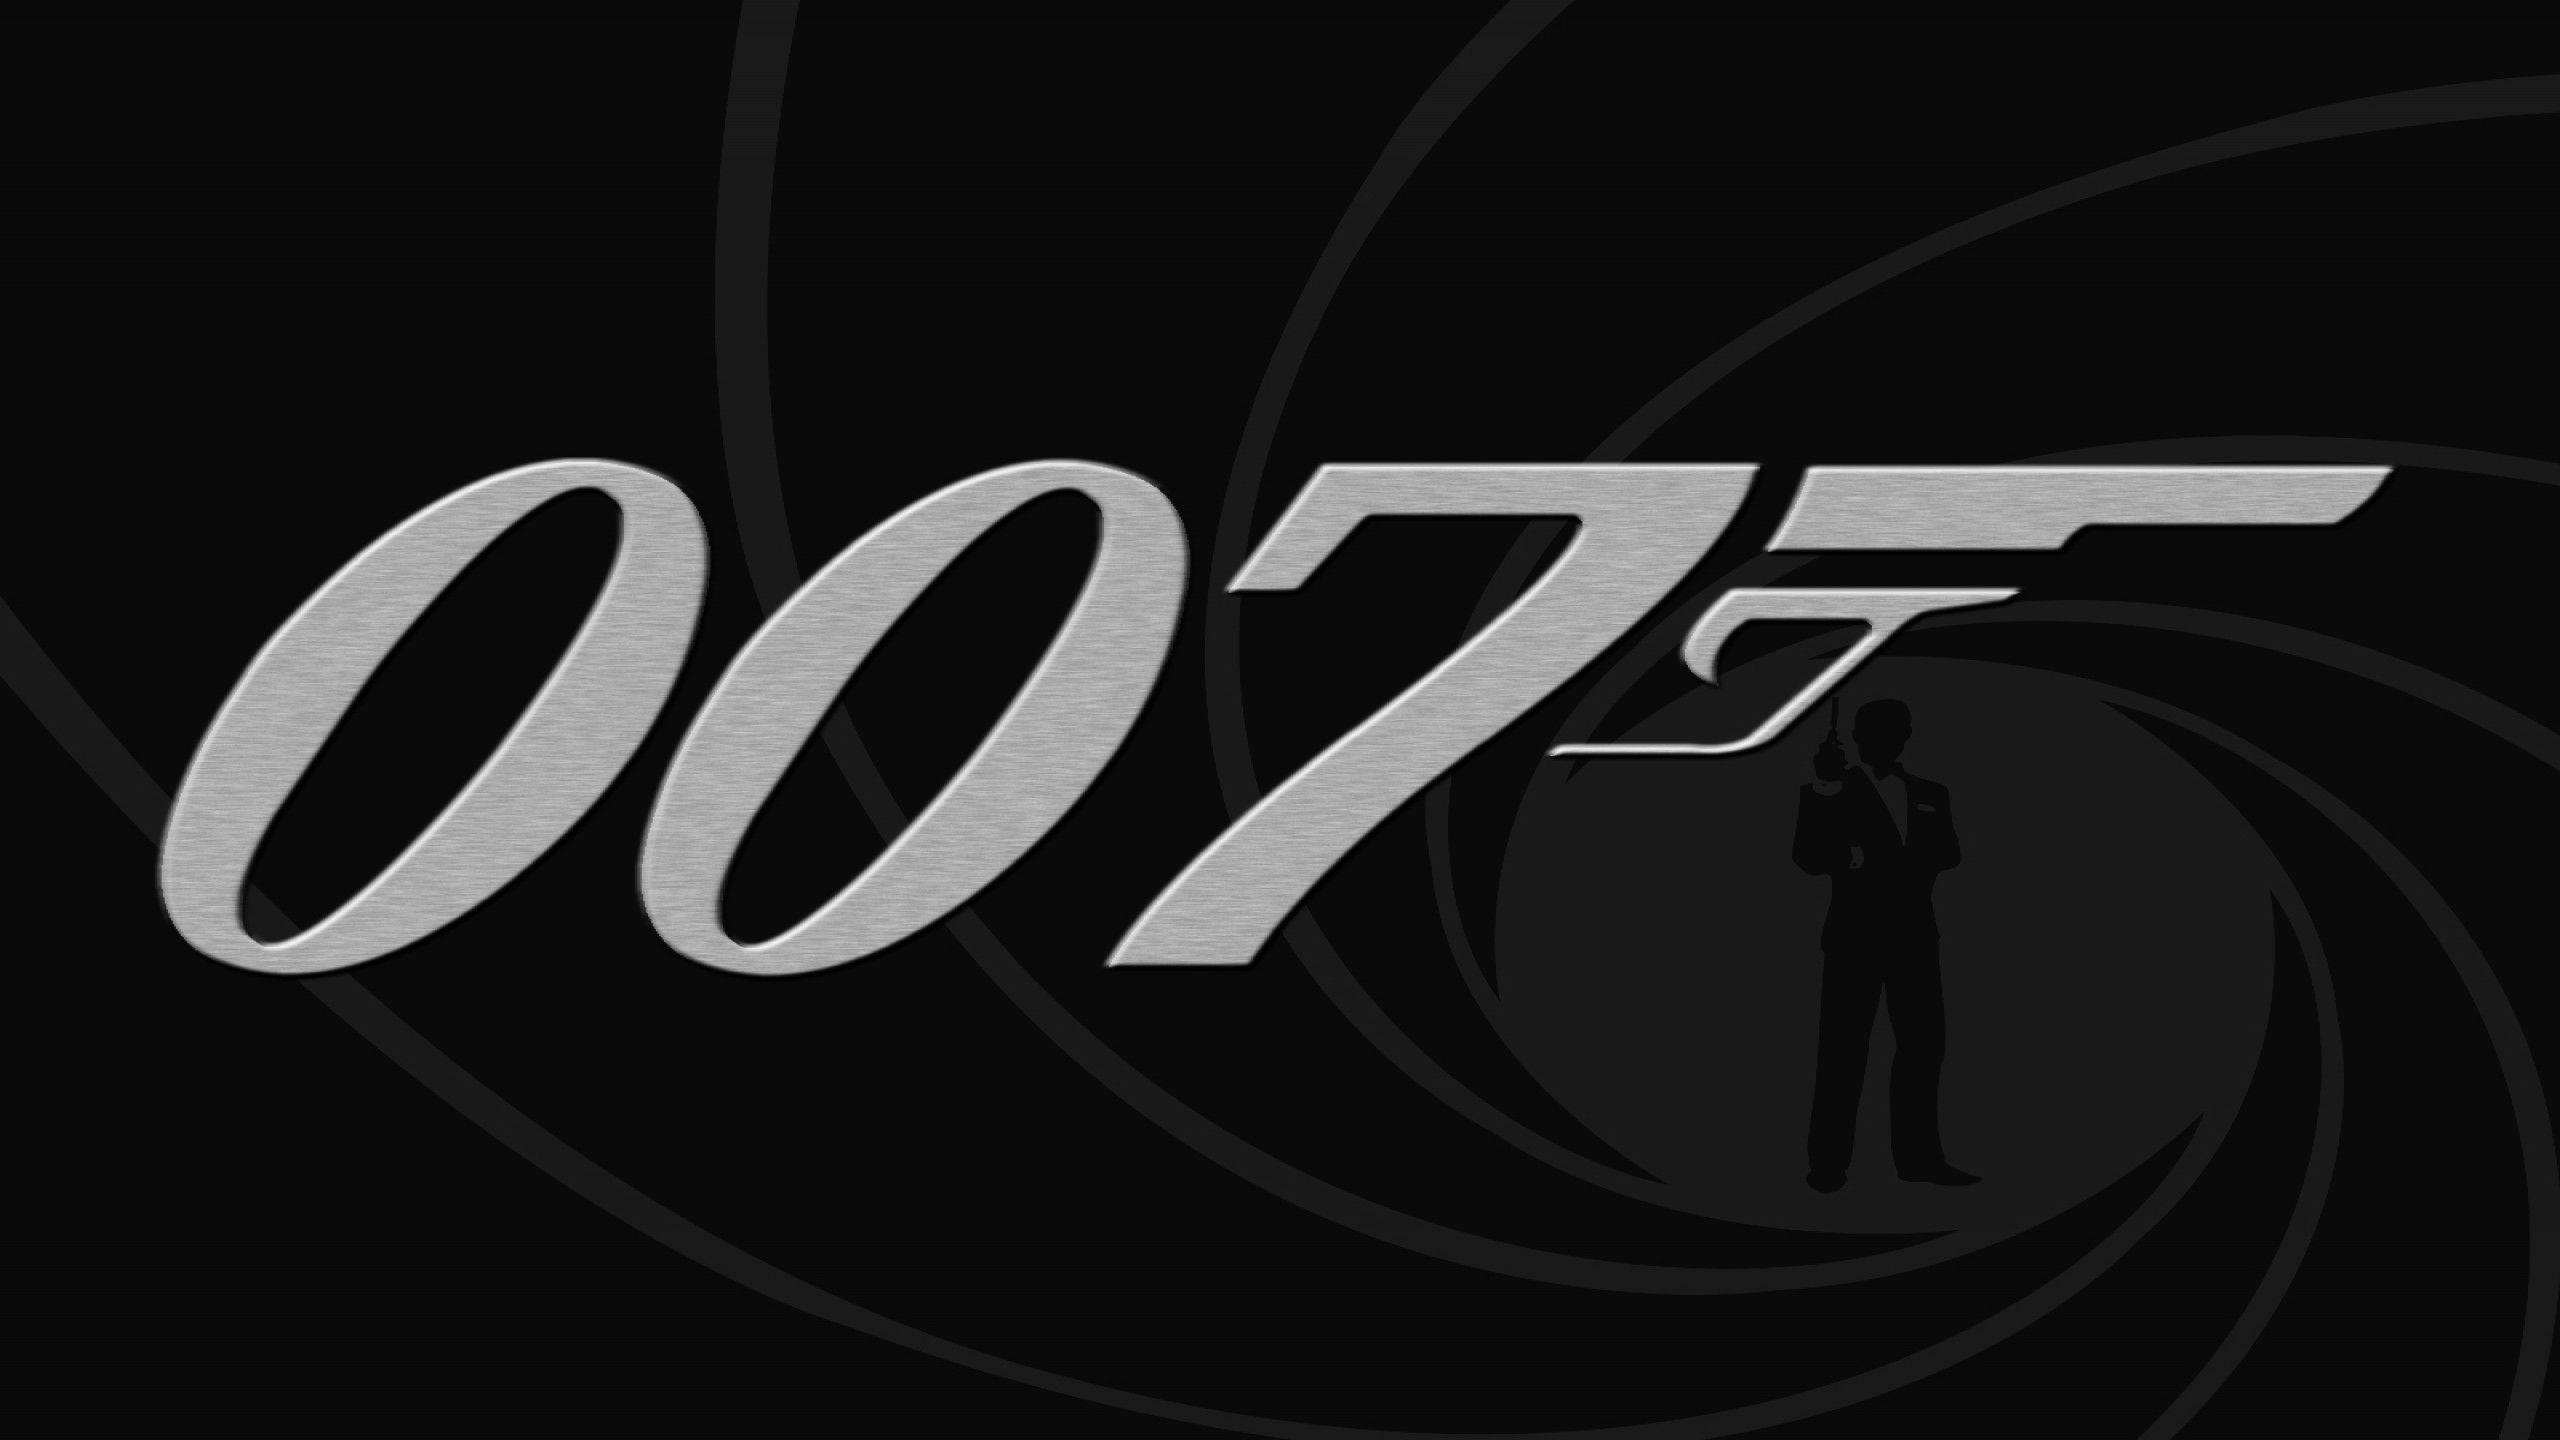 007 wallpapers wallpaper cave - James bond images hd ...